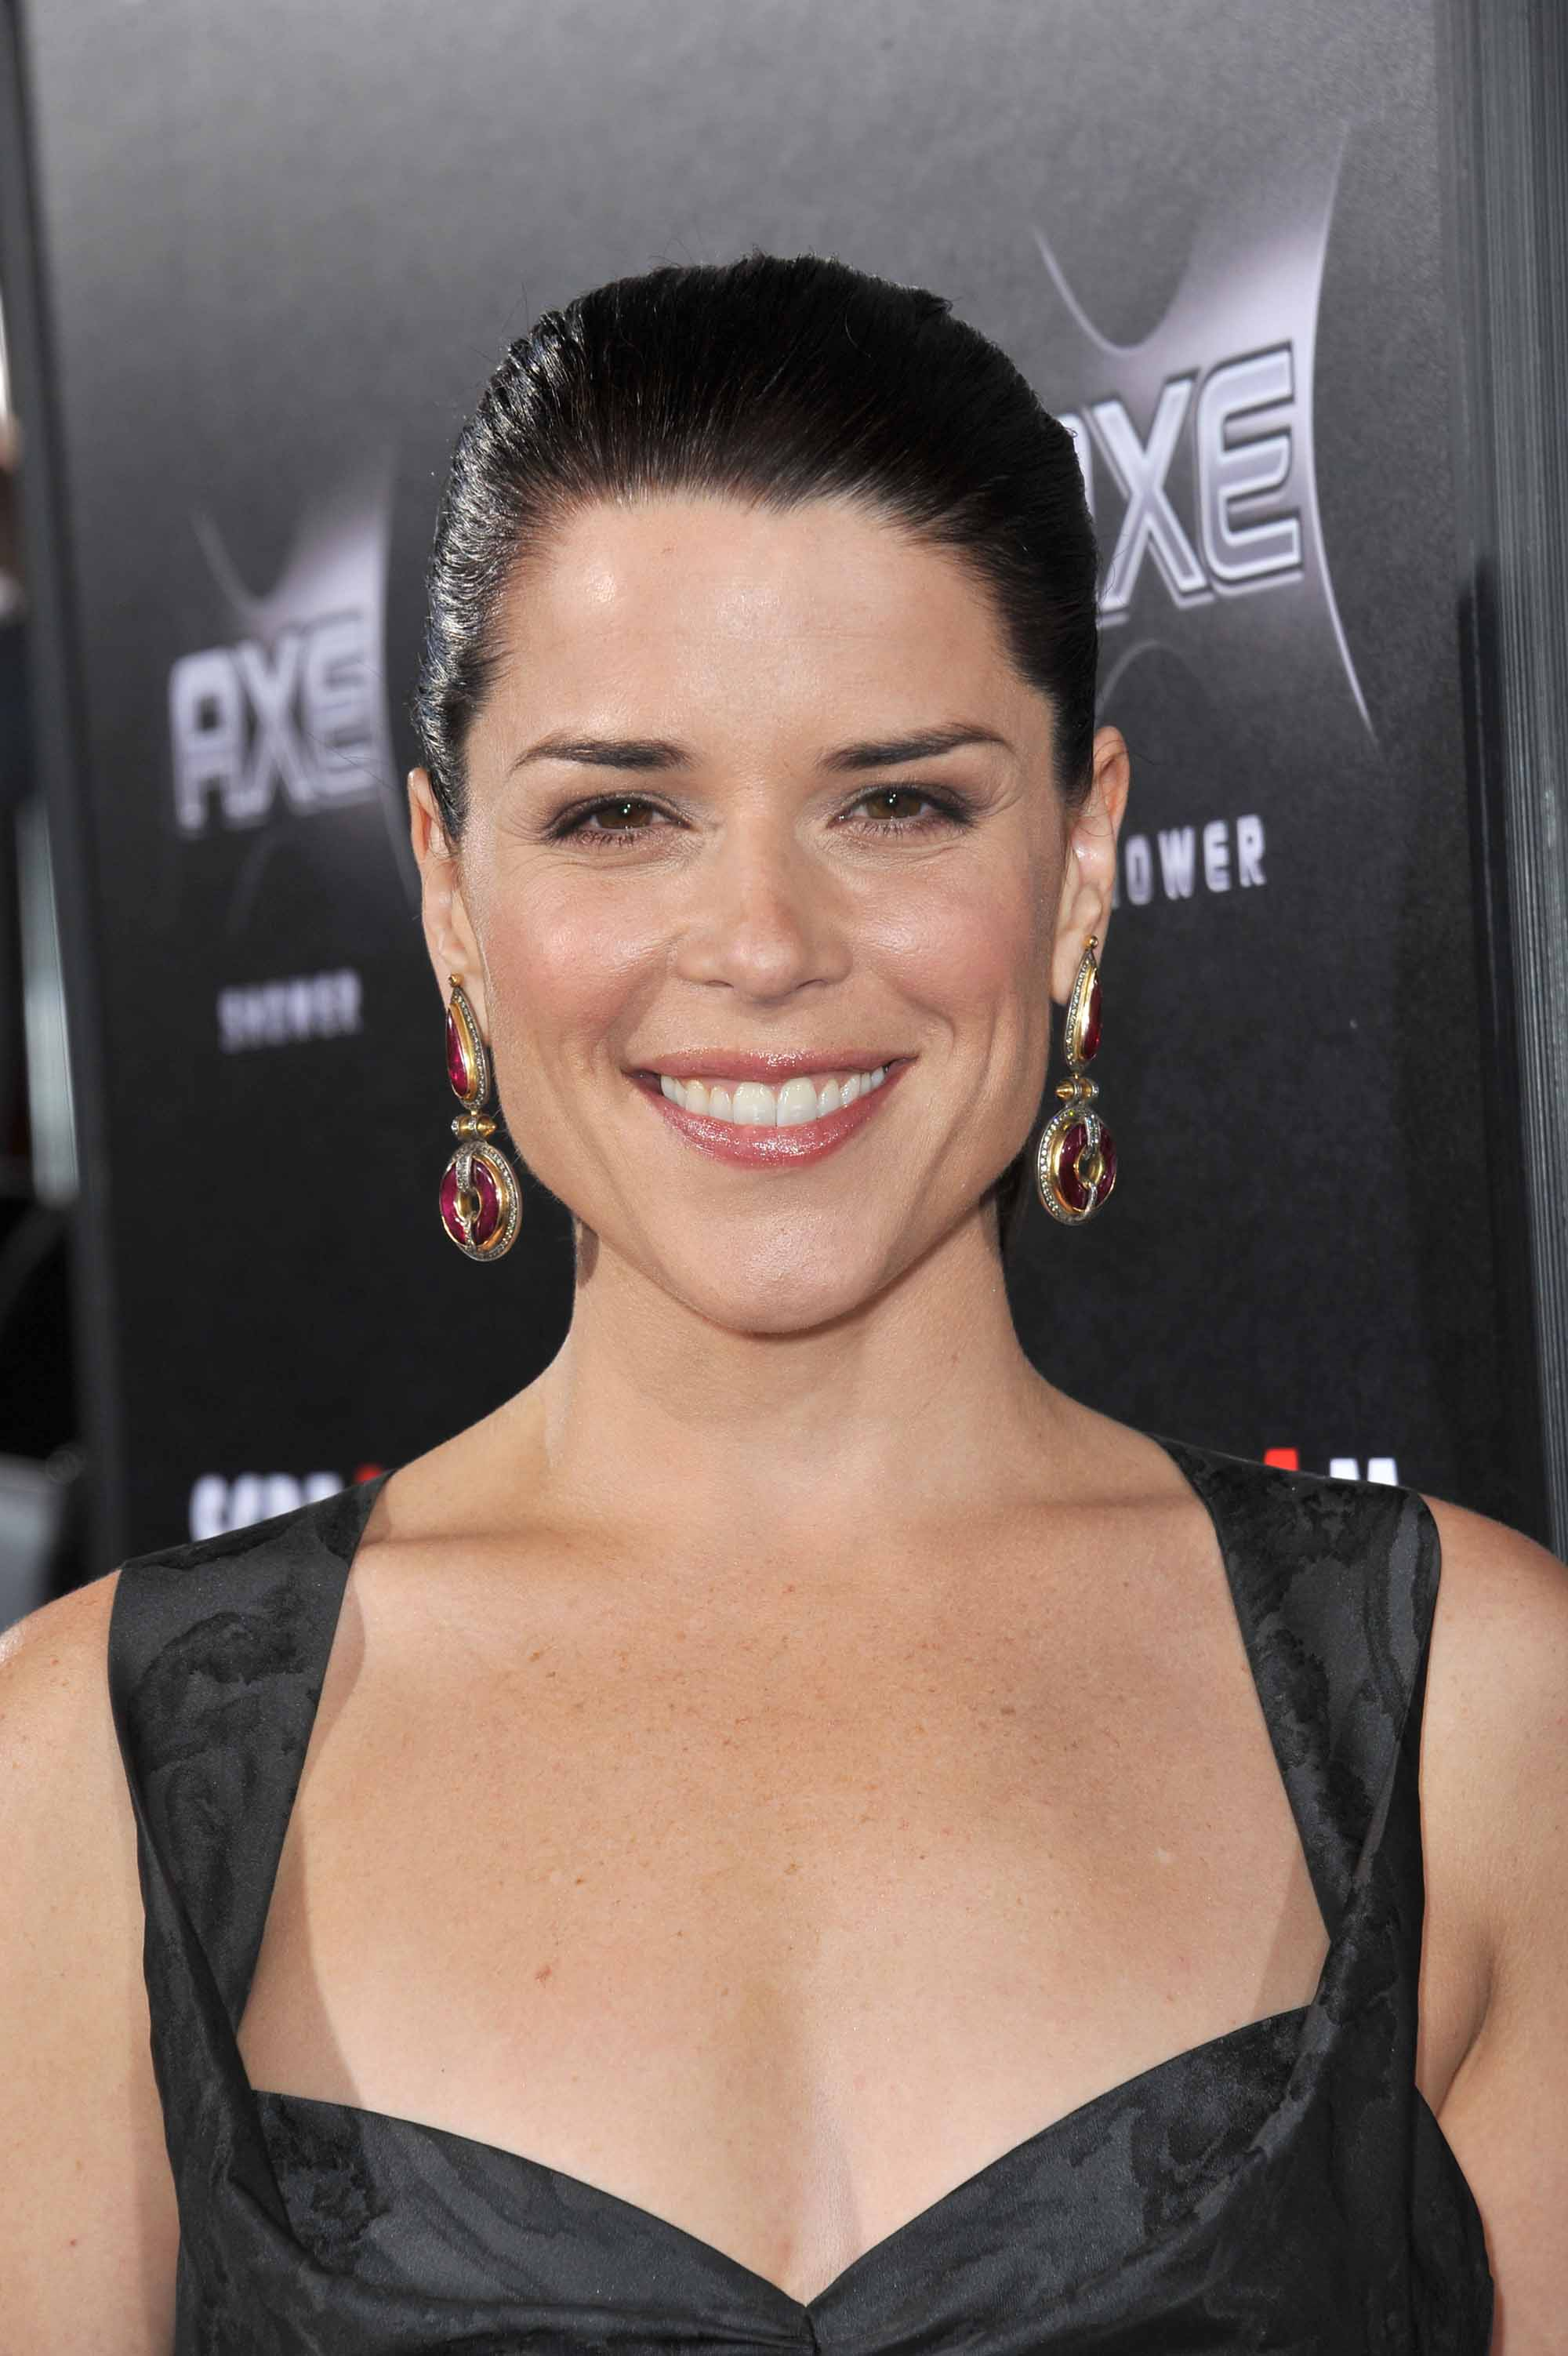 Instagram Neve Campbell naked photo 2017